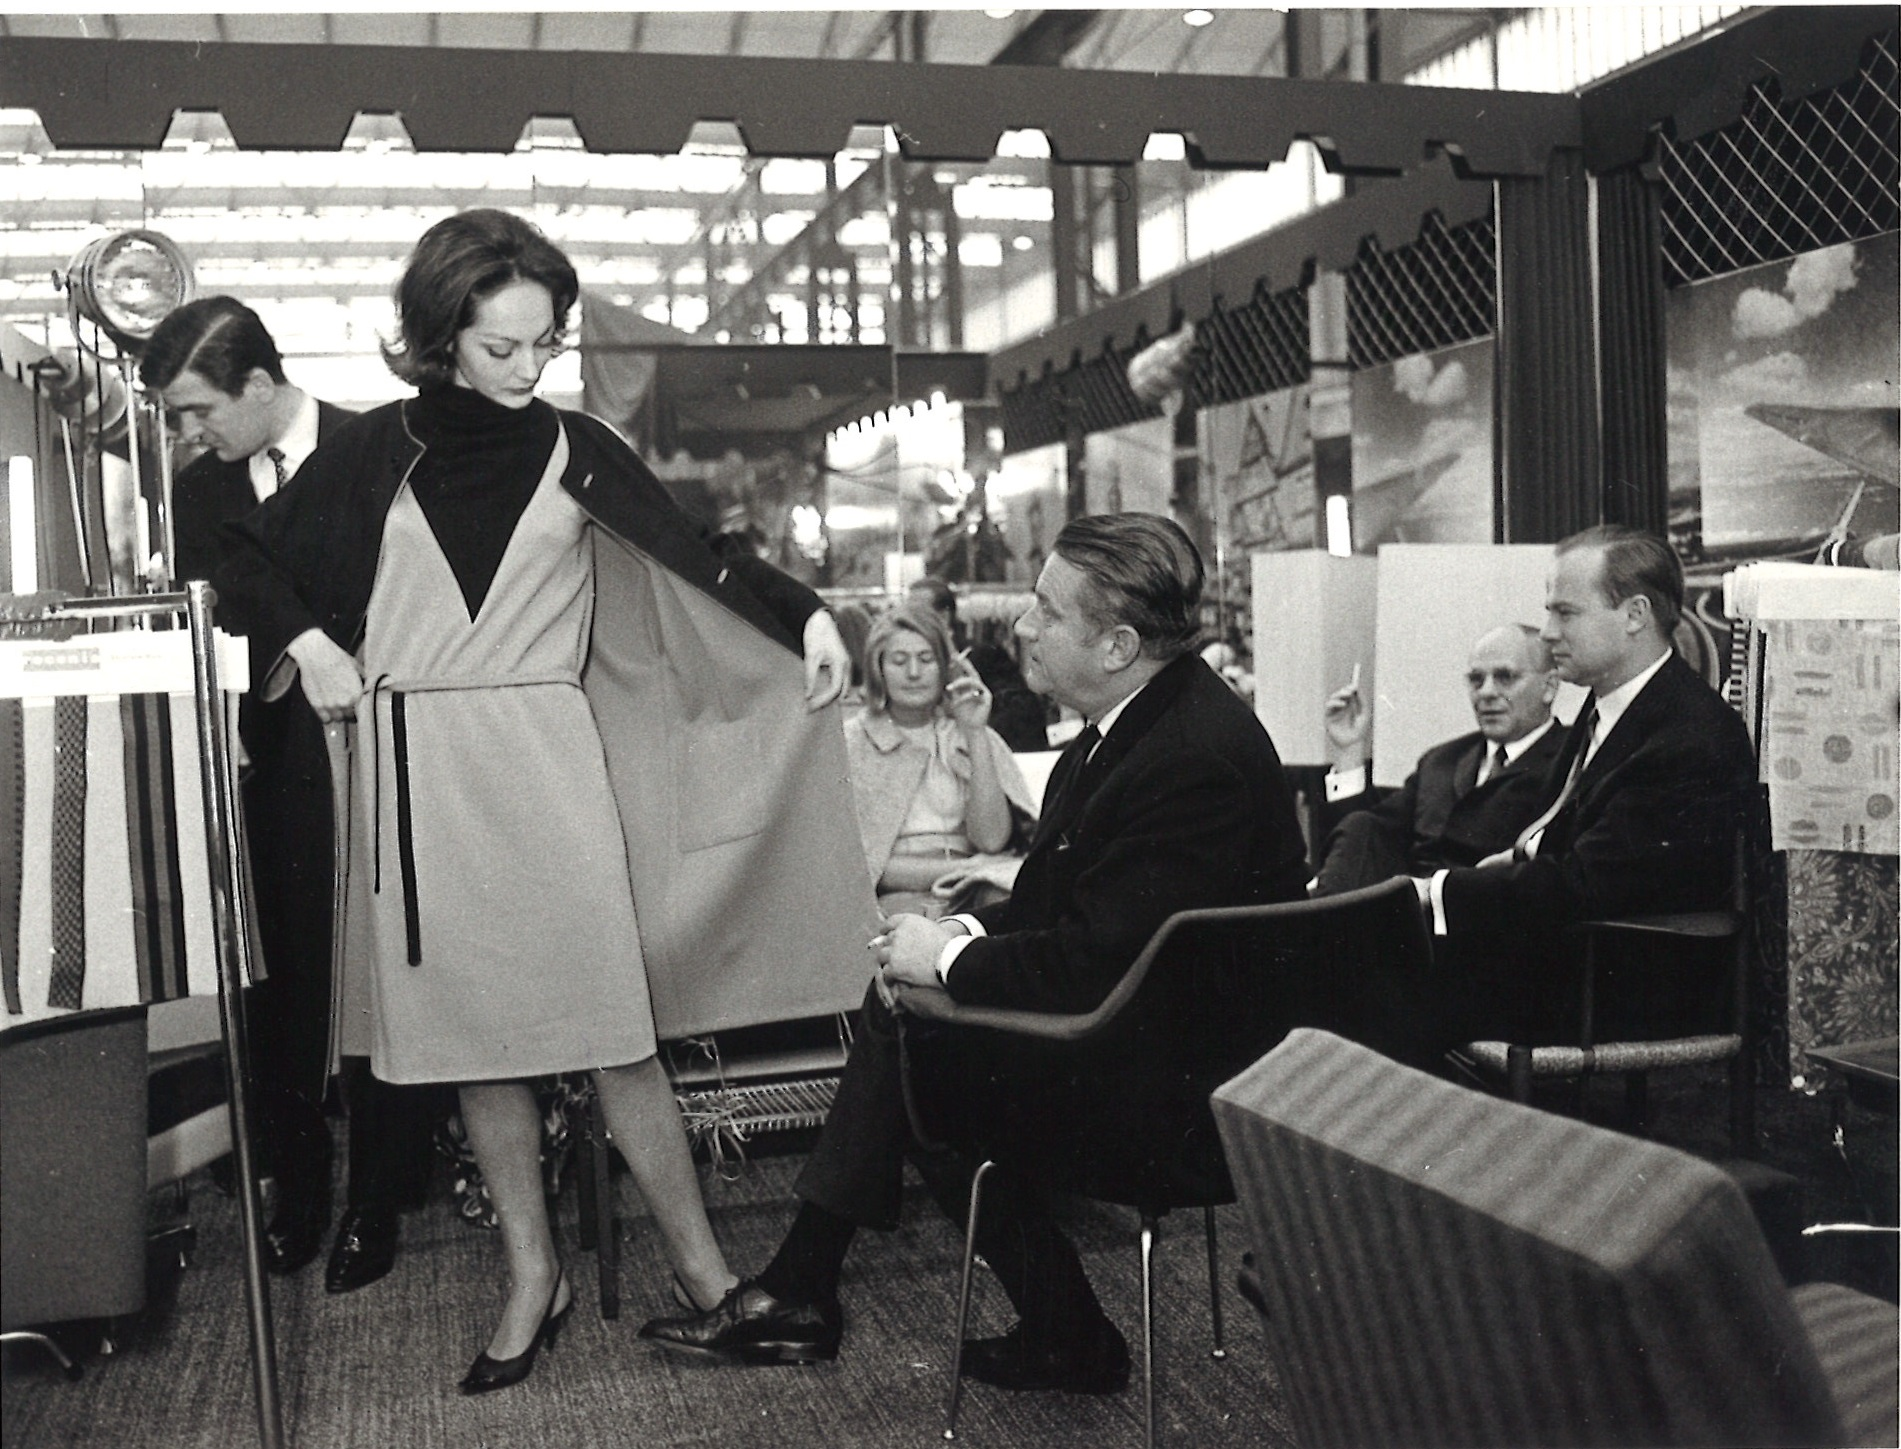 Modemesse Interstoff 1962